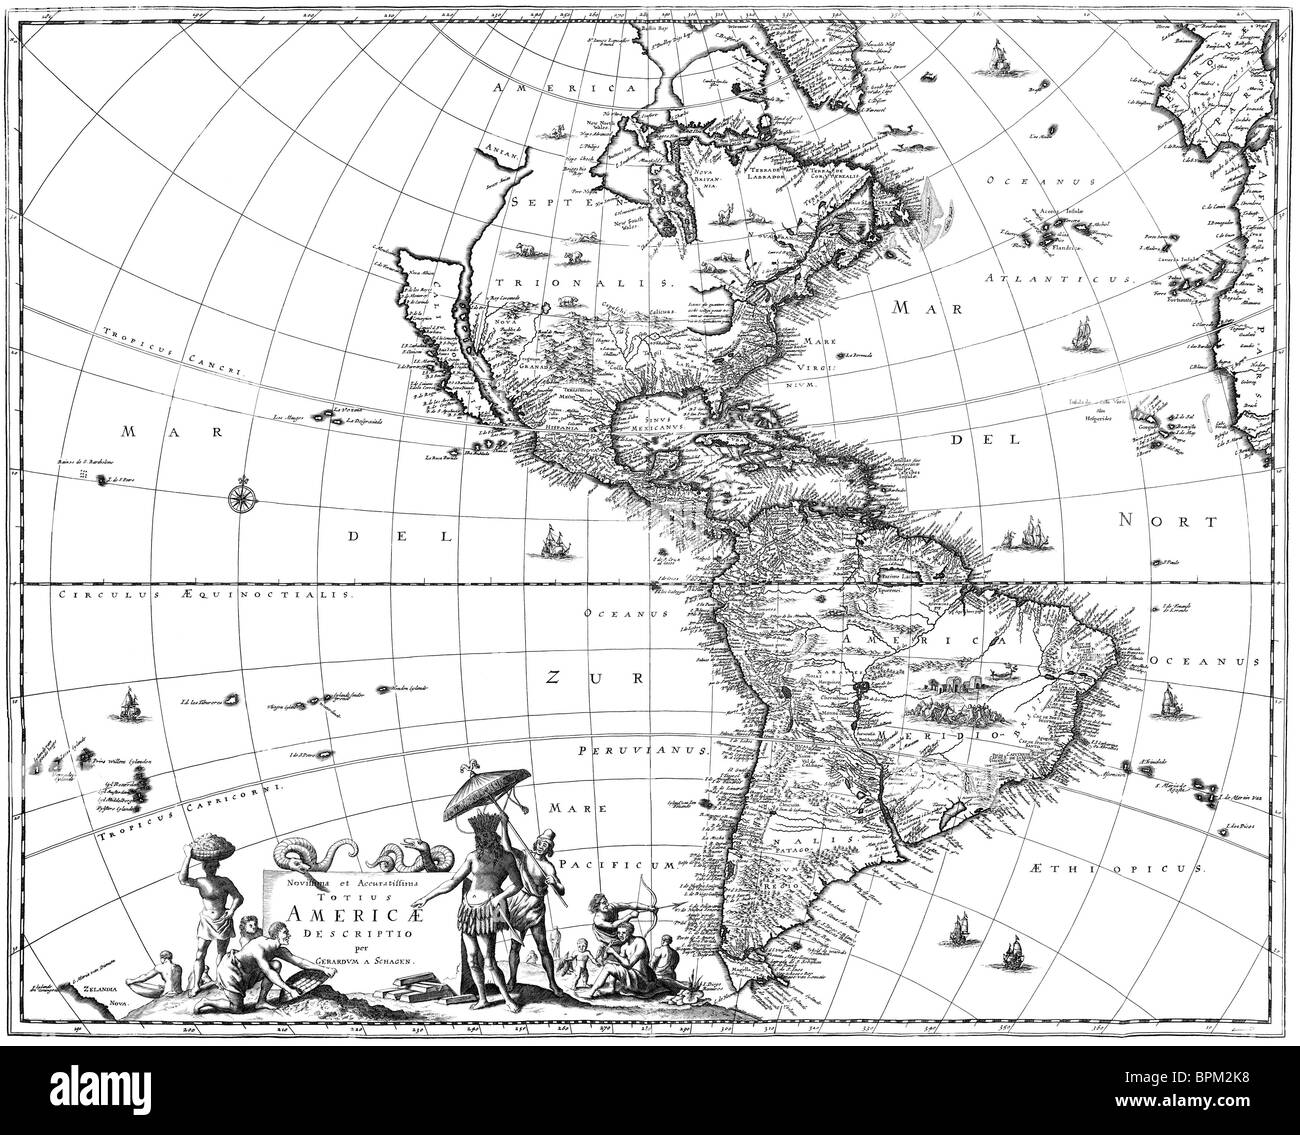 Map of North America and South America showing California as an island. - Stock Image